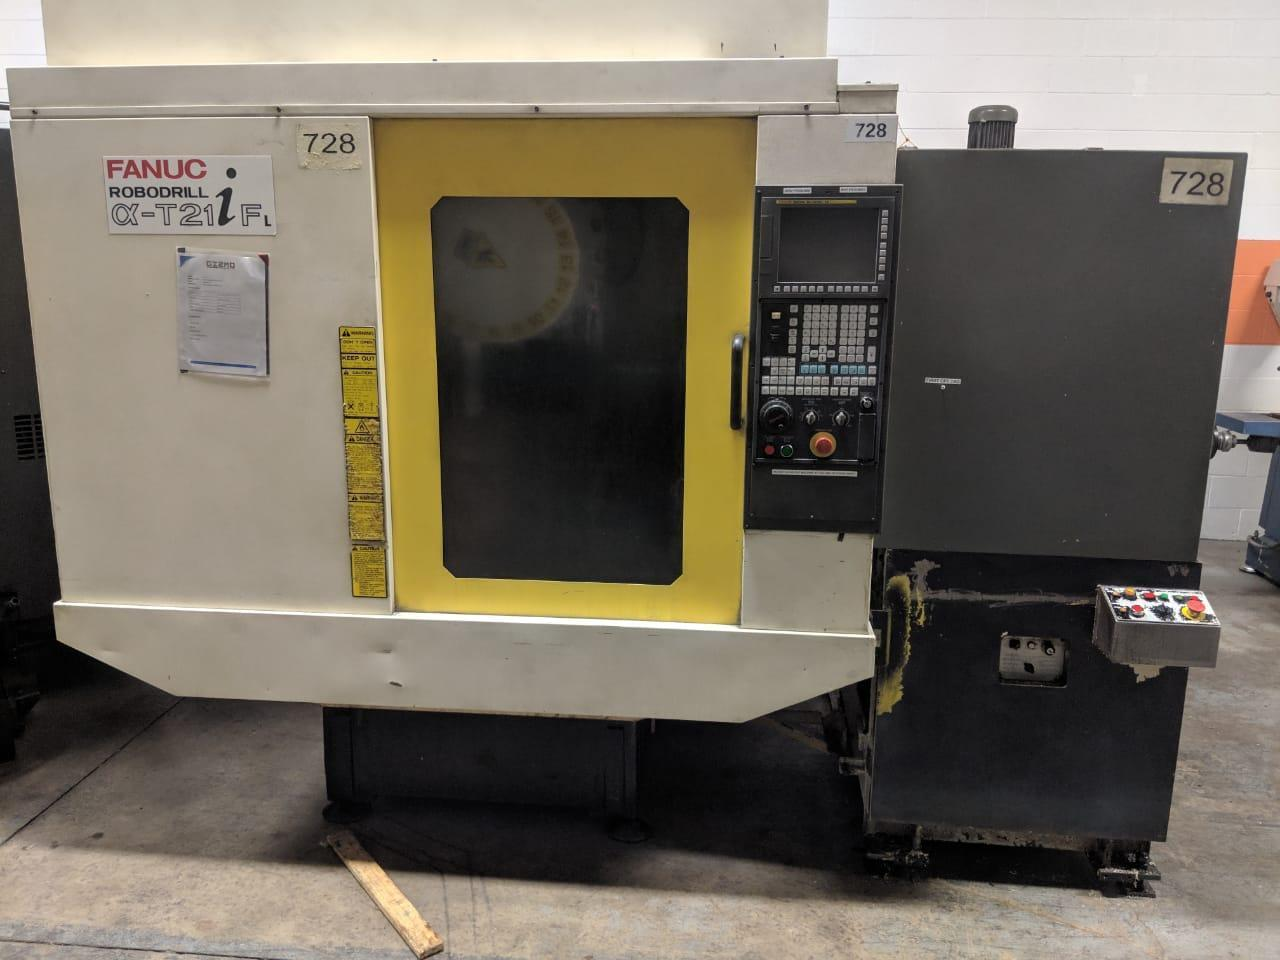 Fanuc Robodrill Alpha T21iF L Vertical Machining Center